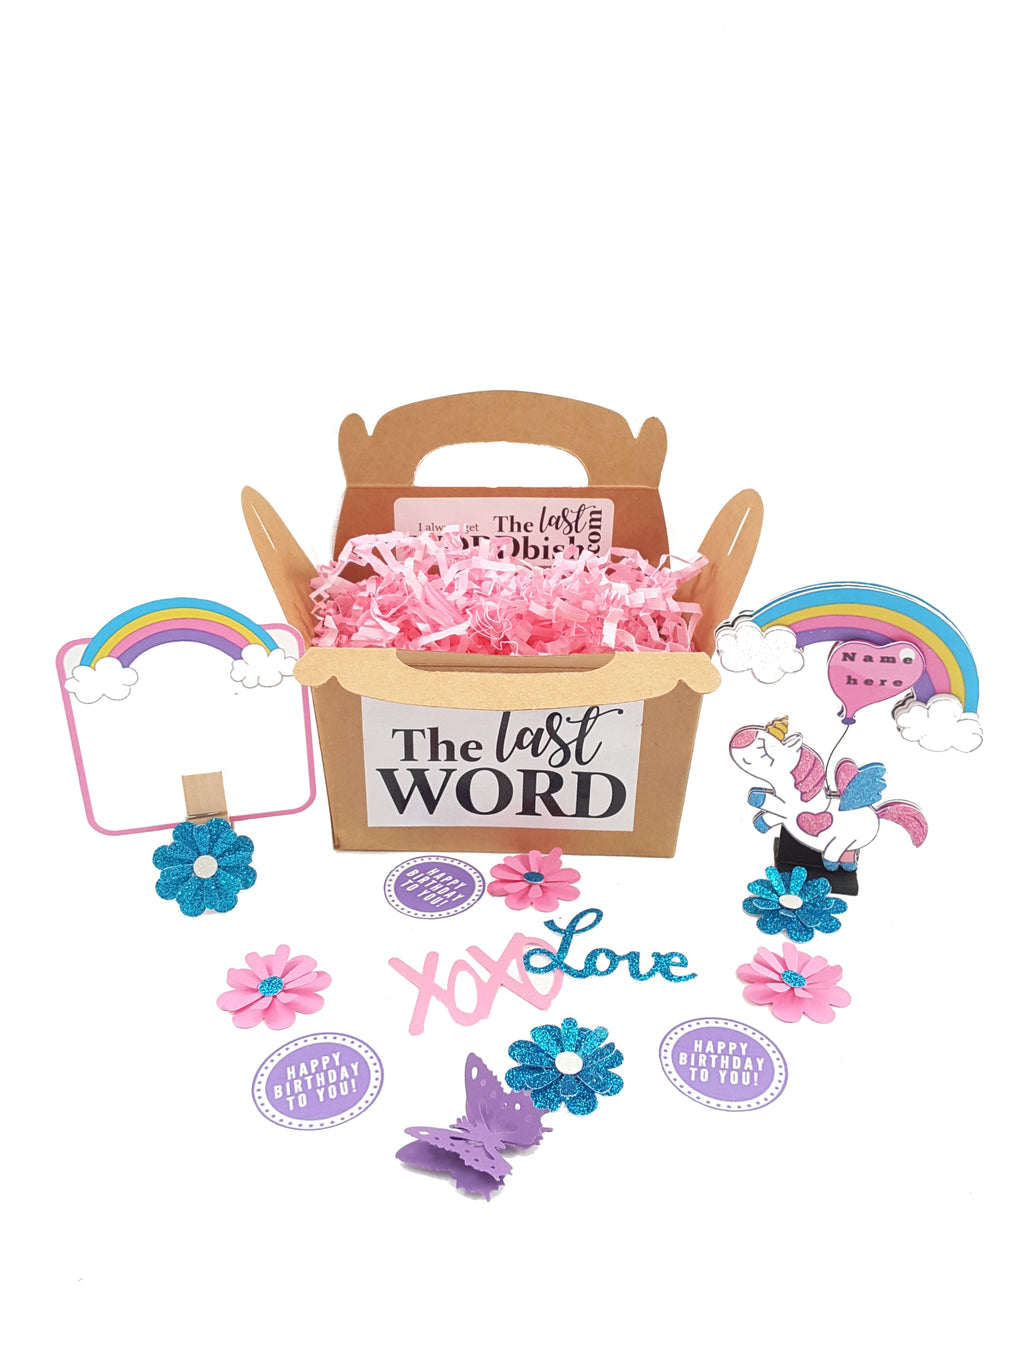 Personalized Stand-up Unicorn Birthday or All Occasion Card - The Last Word Bish